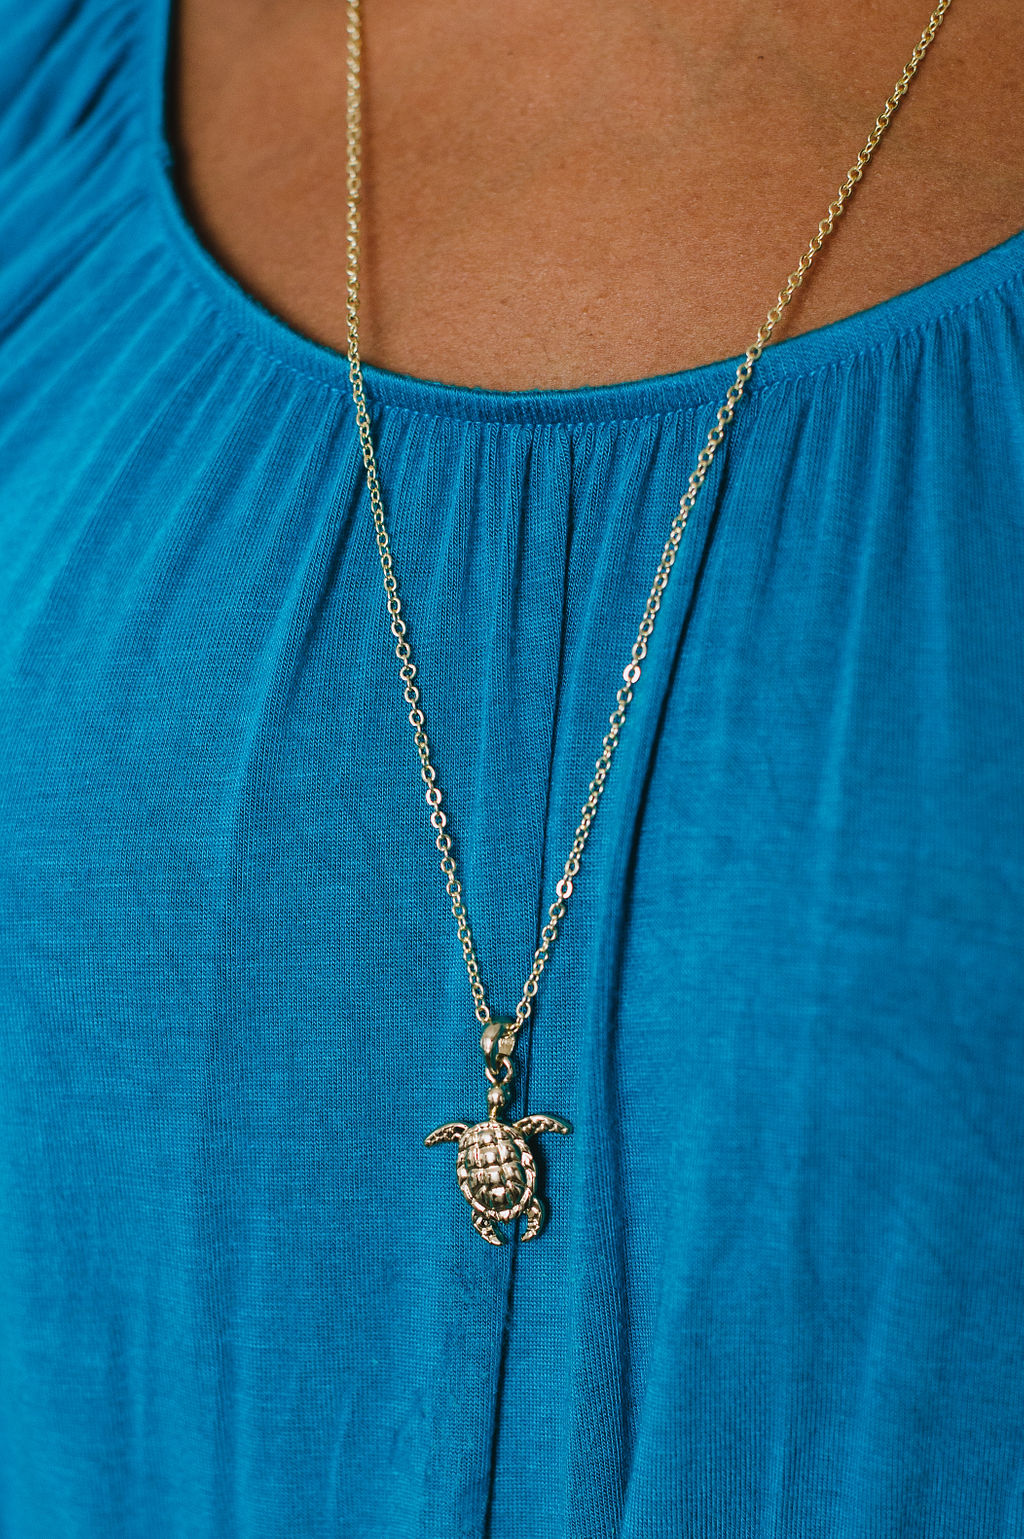 Beck & Boosh Sea Turtle Long Necklace Plated Gold Sea Turtle Pendant Hangs From Long Plated Gold Chain On Model